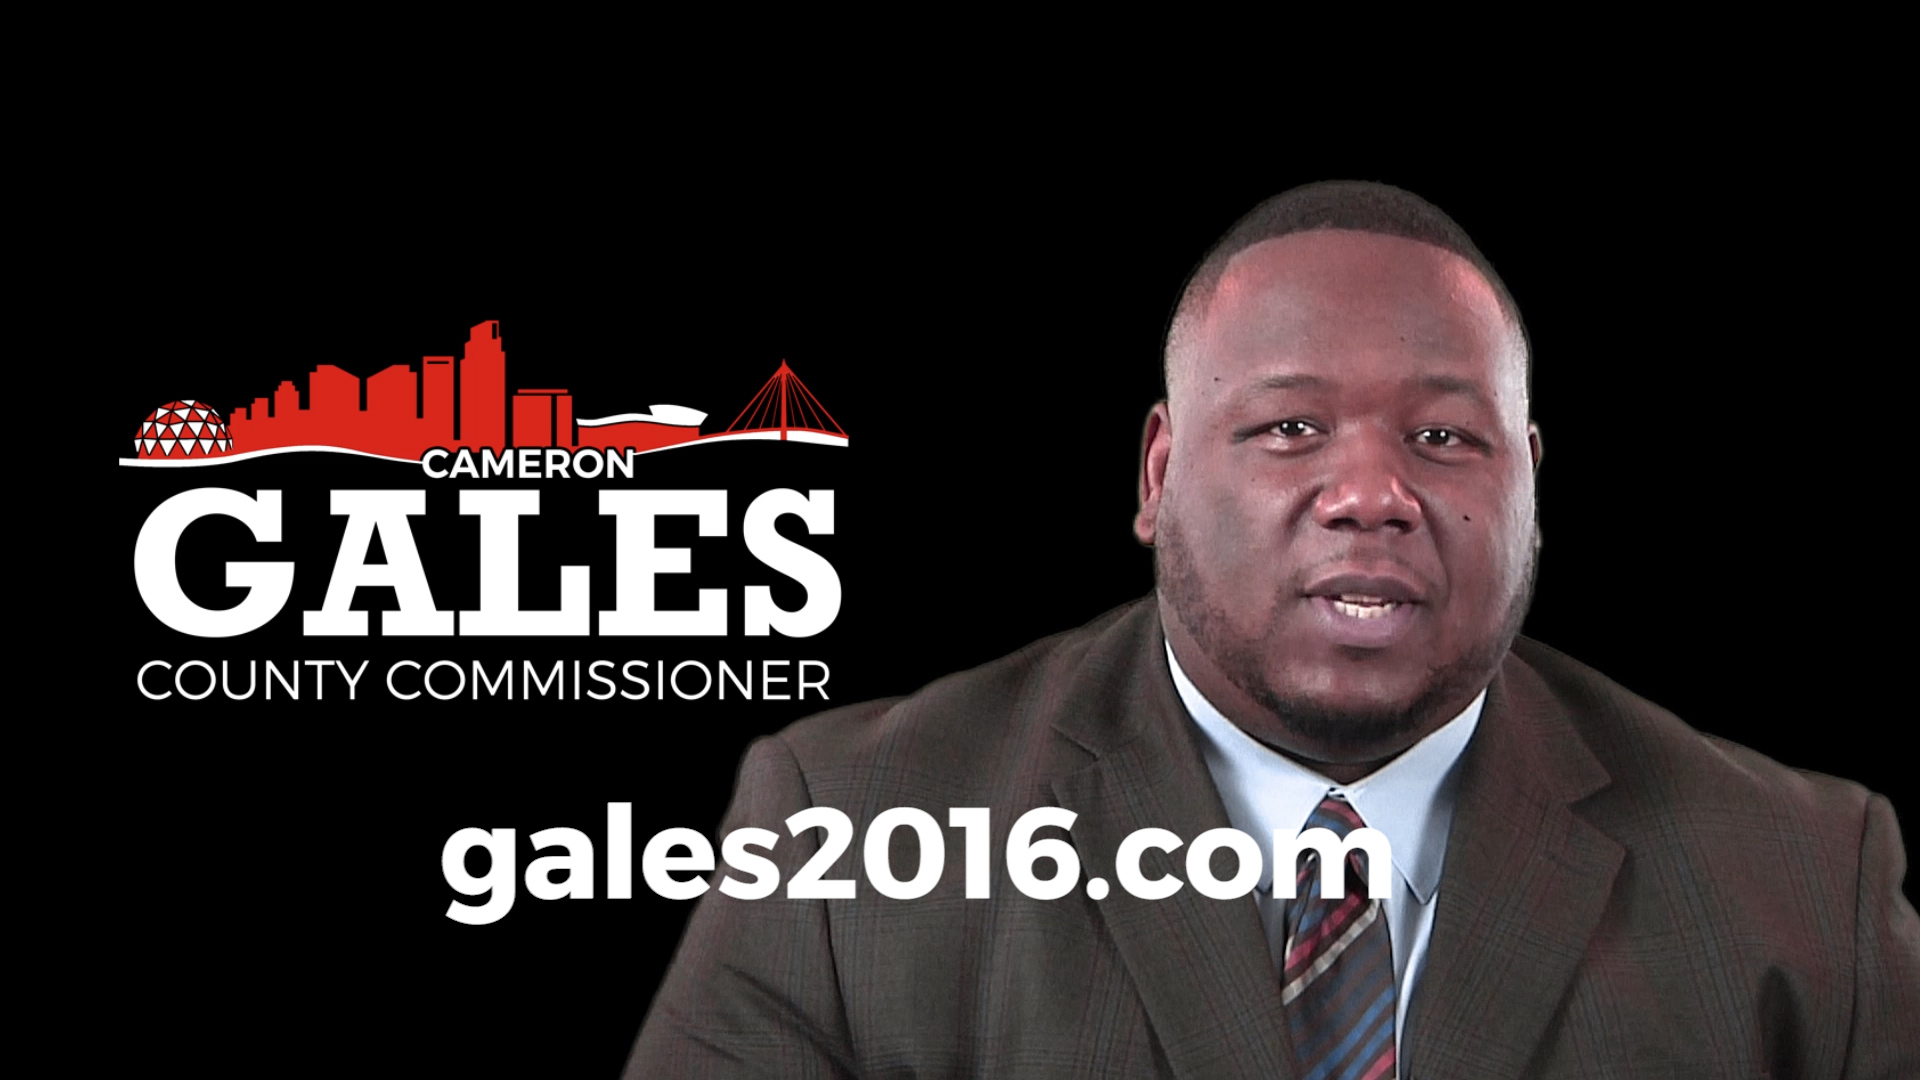 Cameron Gales, County Commission